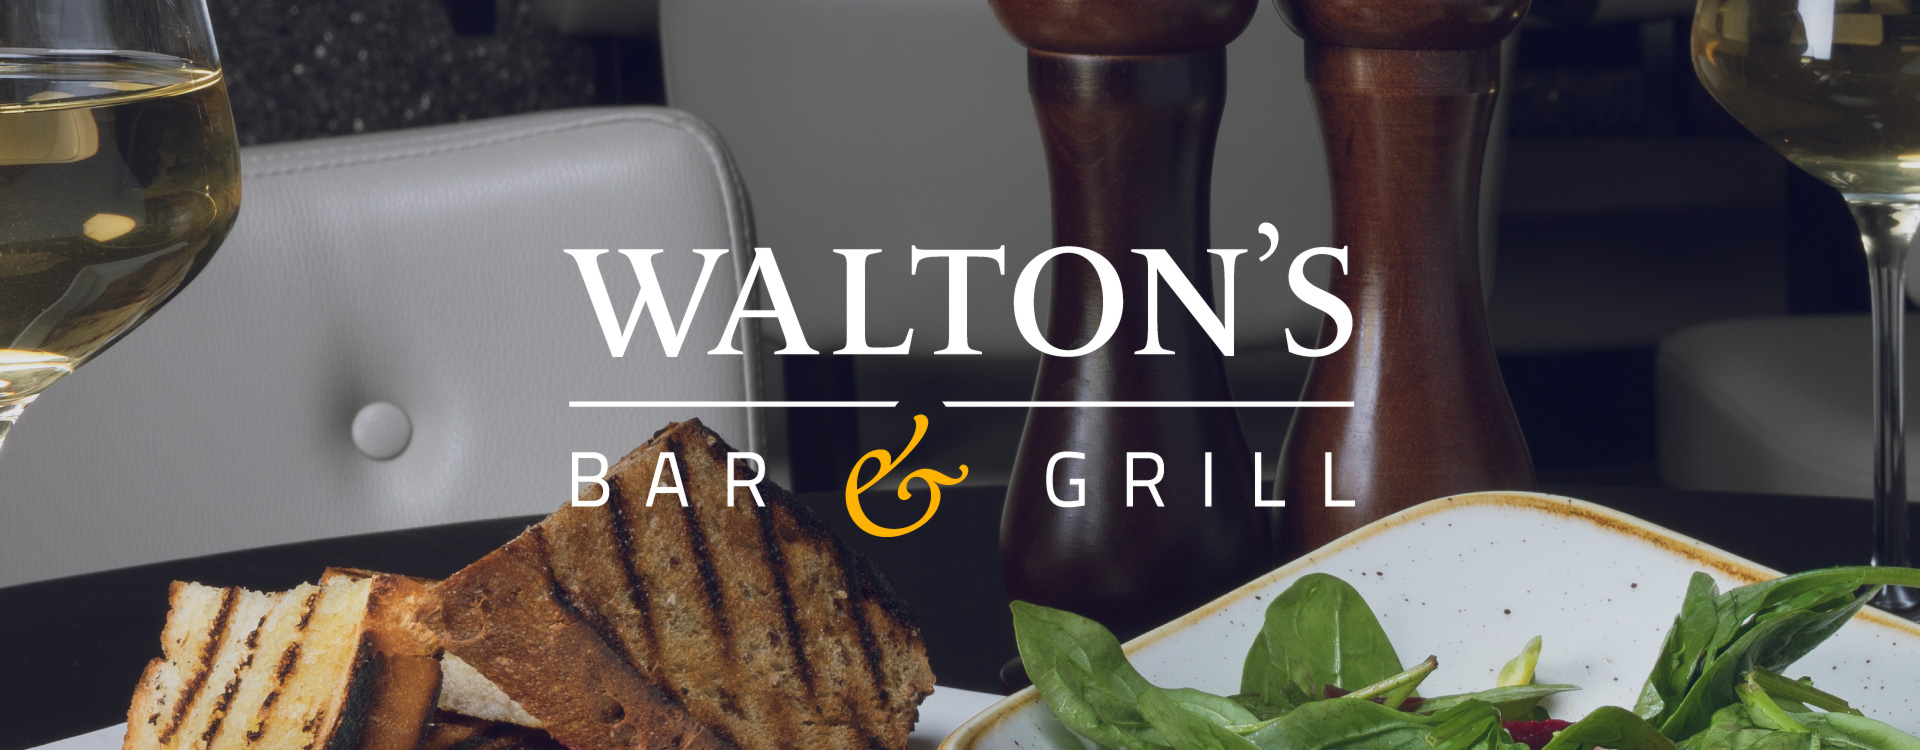 Plain Creative Project Waltons Bar and Grill - intro logo image